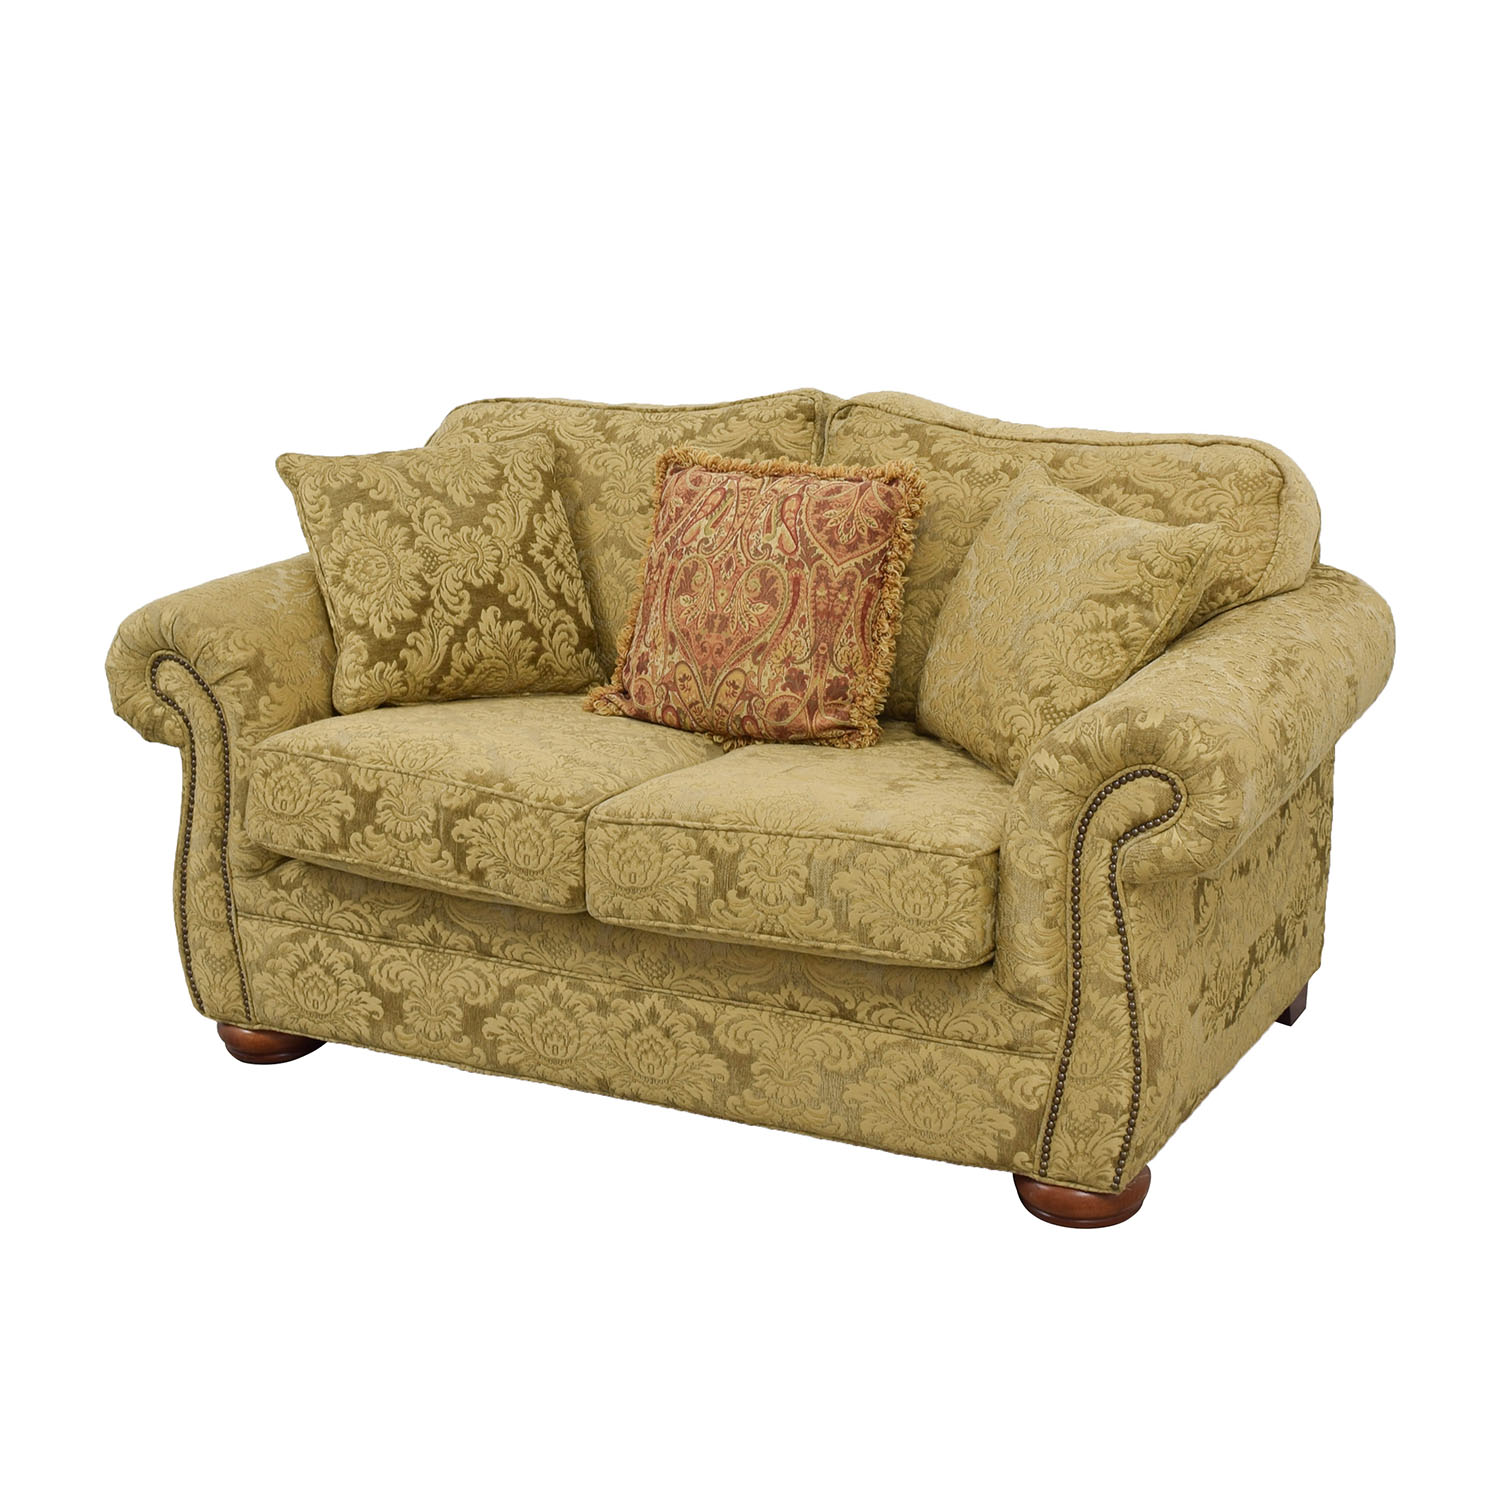 84 Off Gold Upholstered Loveseat With Toss Pillows Sofas